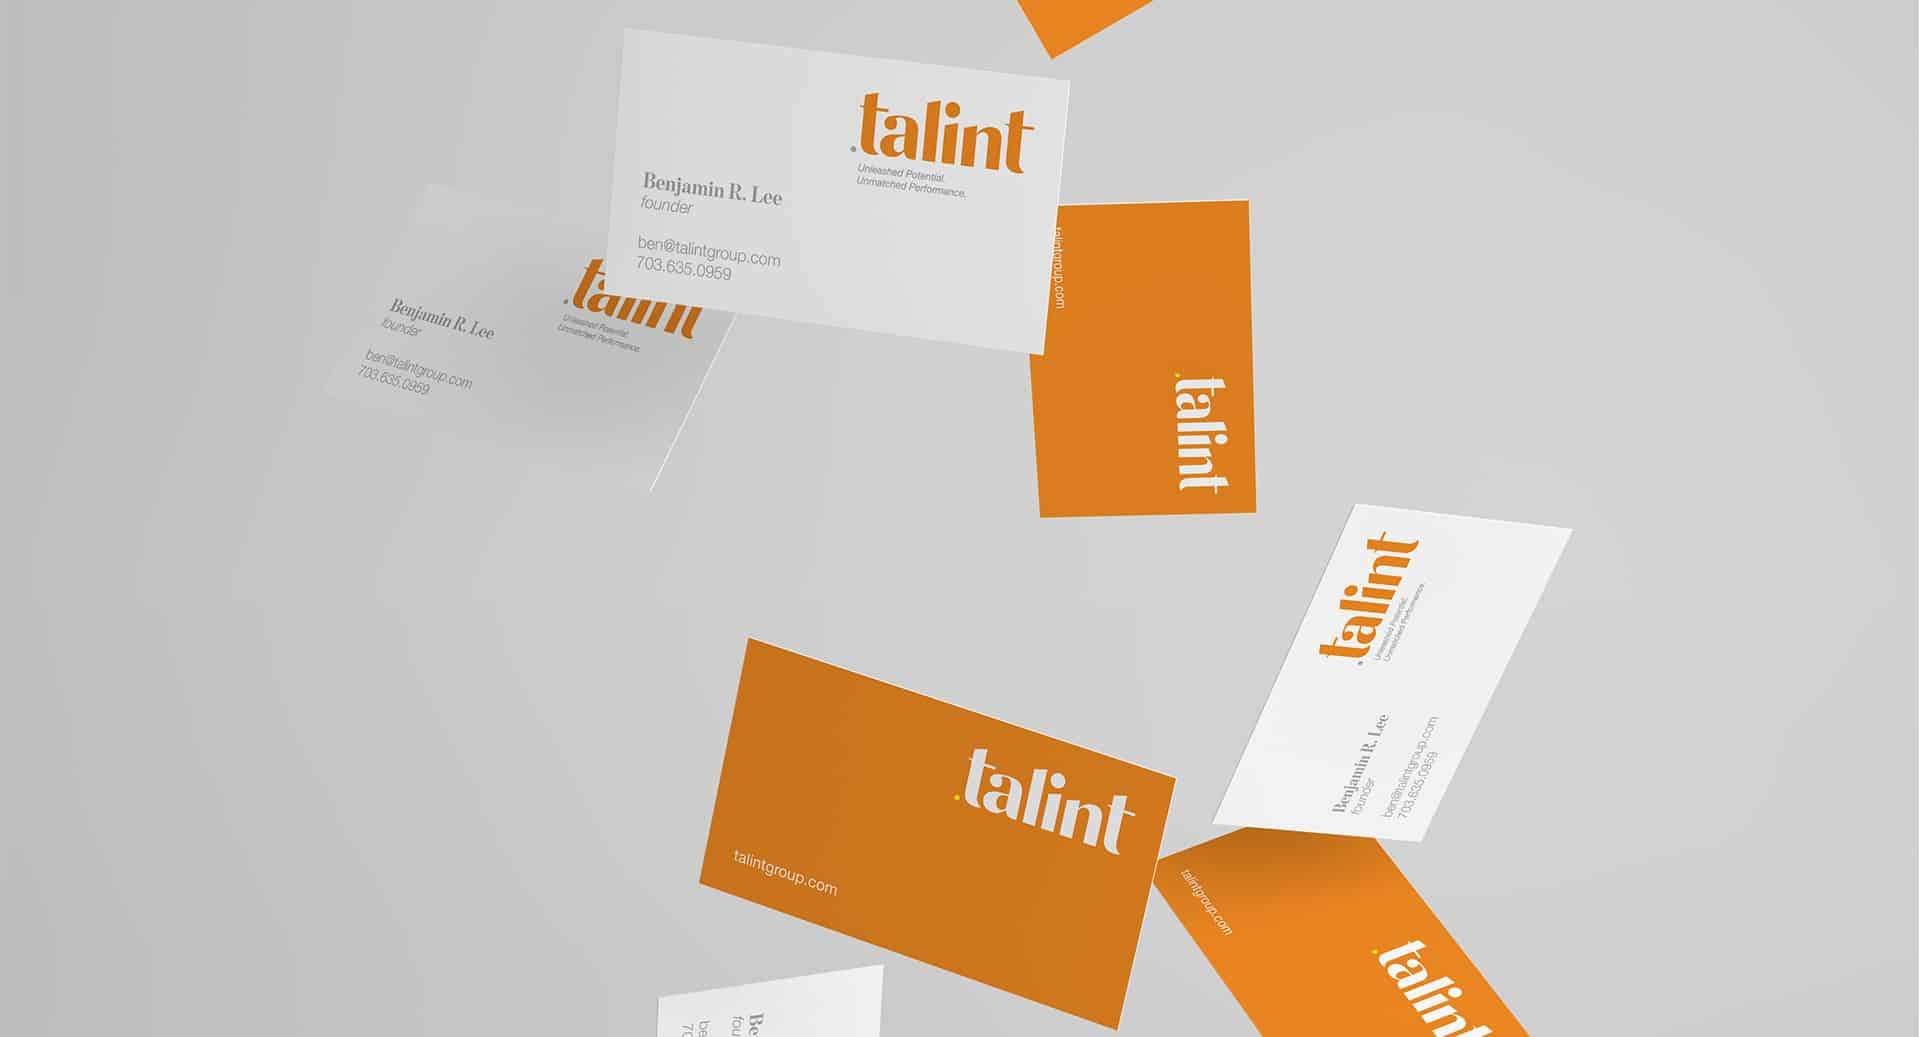 talint-businesscards-halfwidth